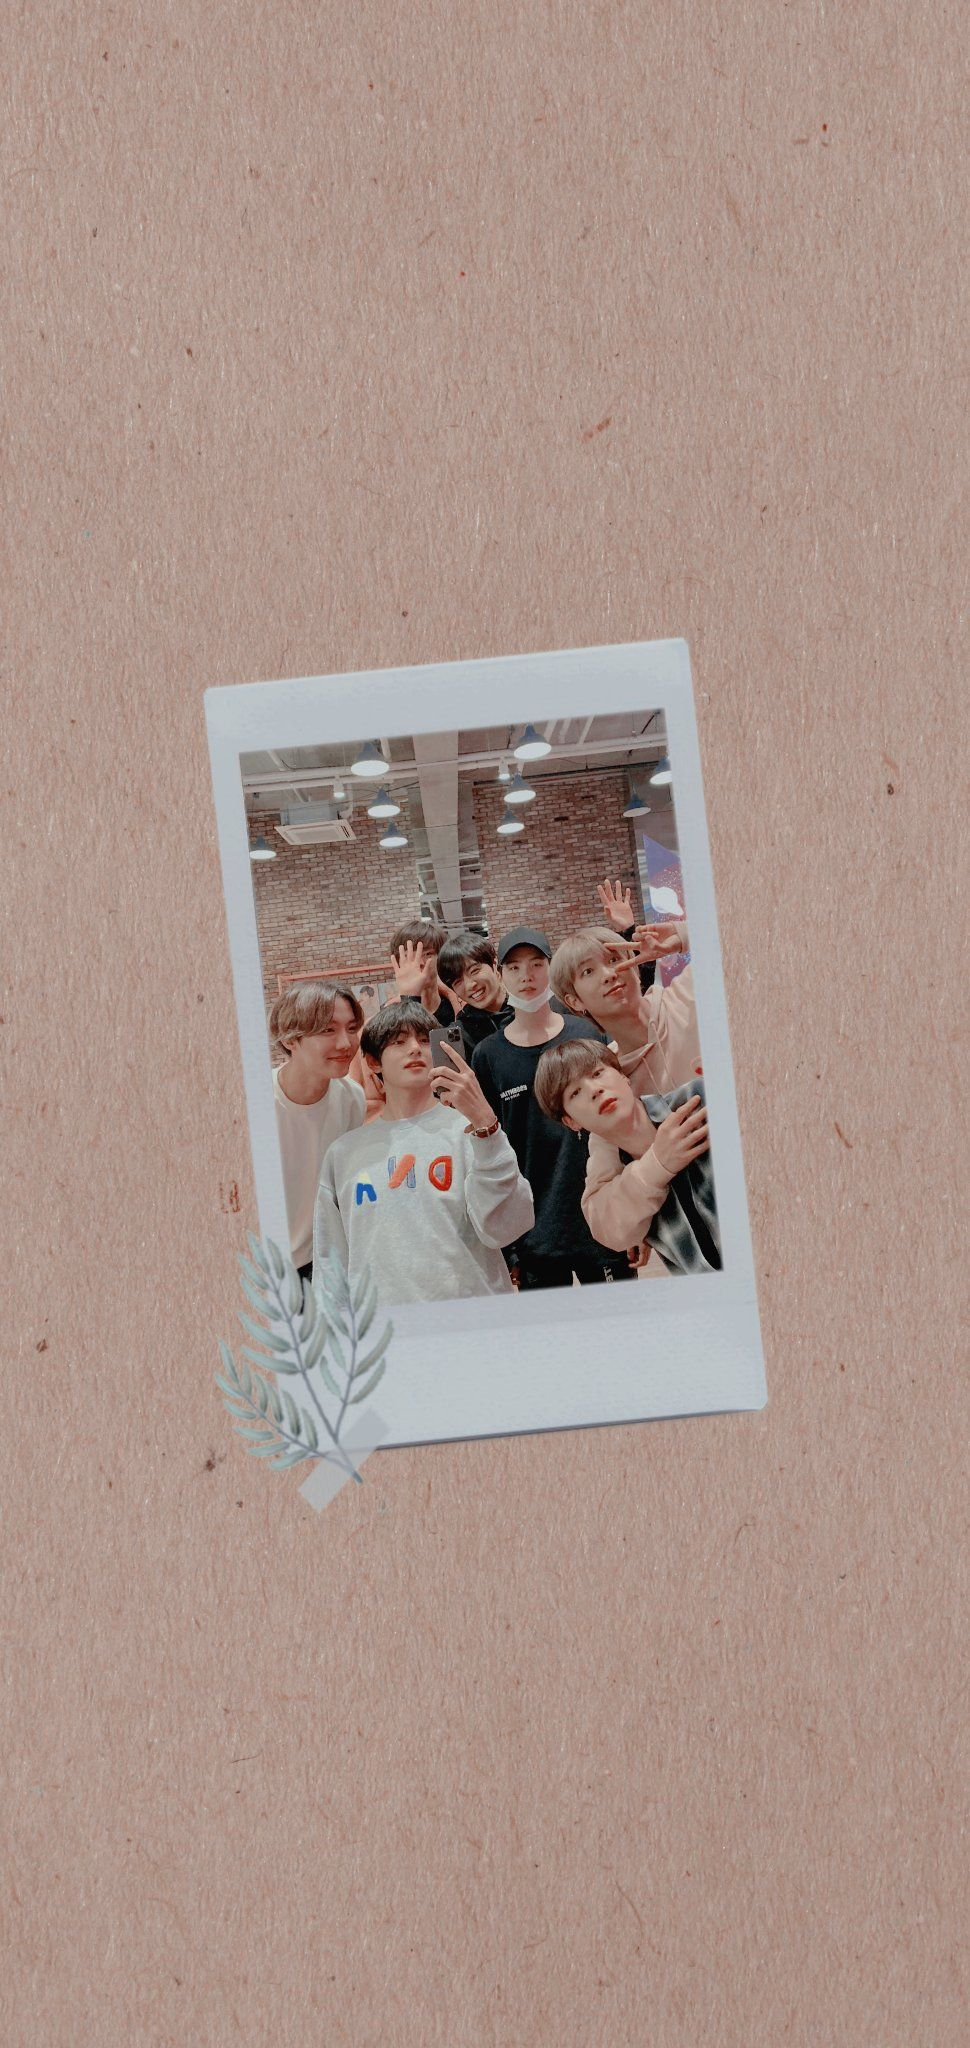 Lockscreen BTS 📼 (@lockszcreenbts)